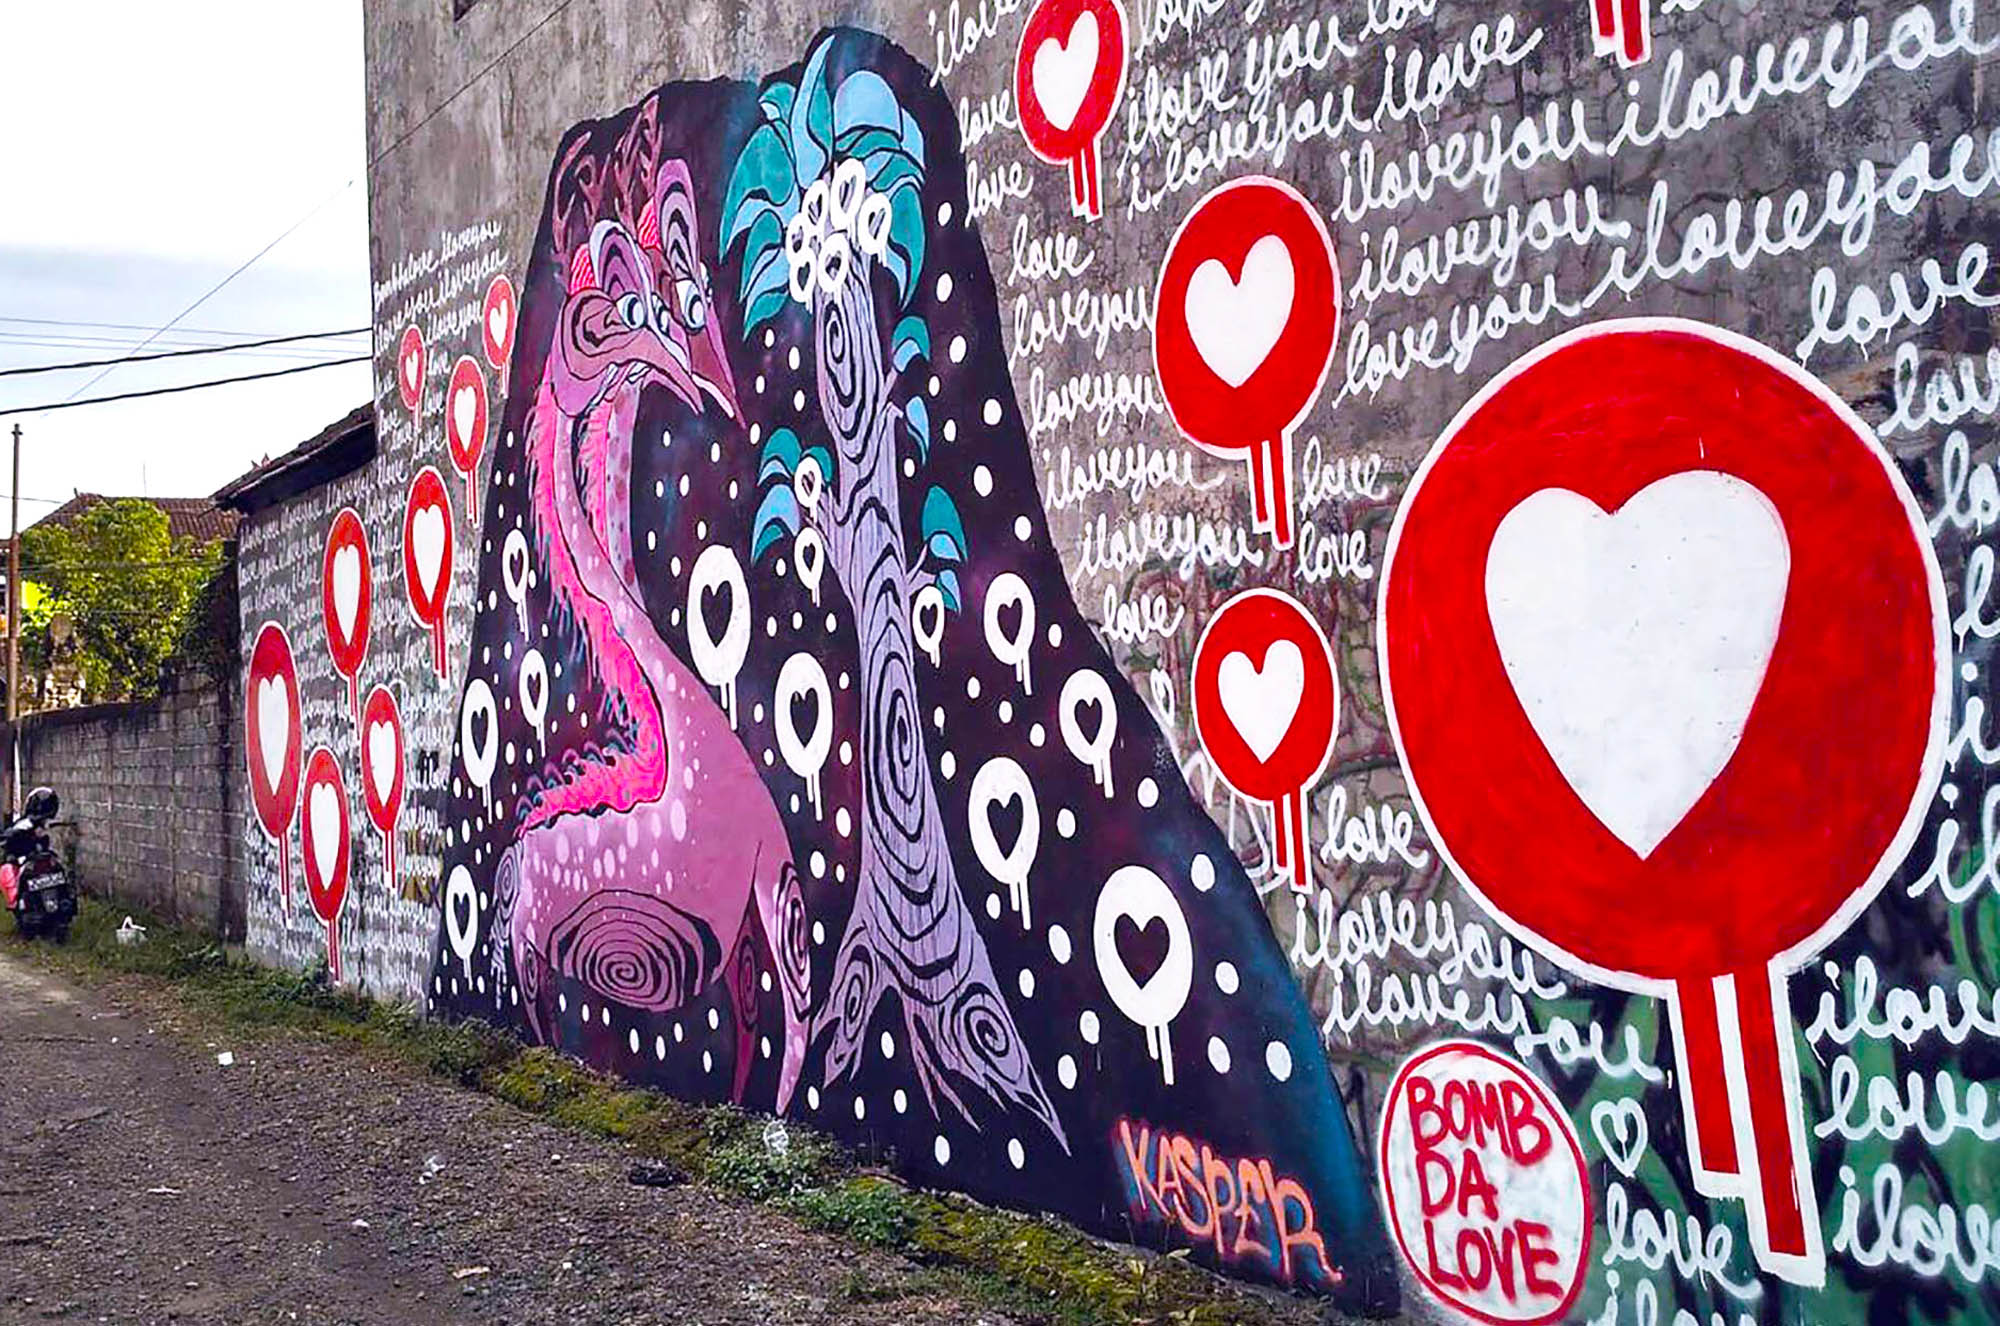 Collaboration with: BOMB DA LOVE painted in Ubud, Bali as a part of my artist residency with Cata Odata